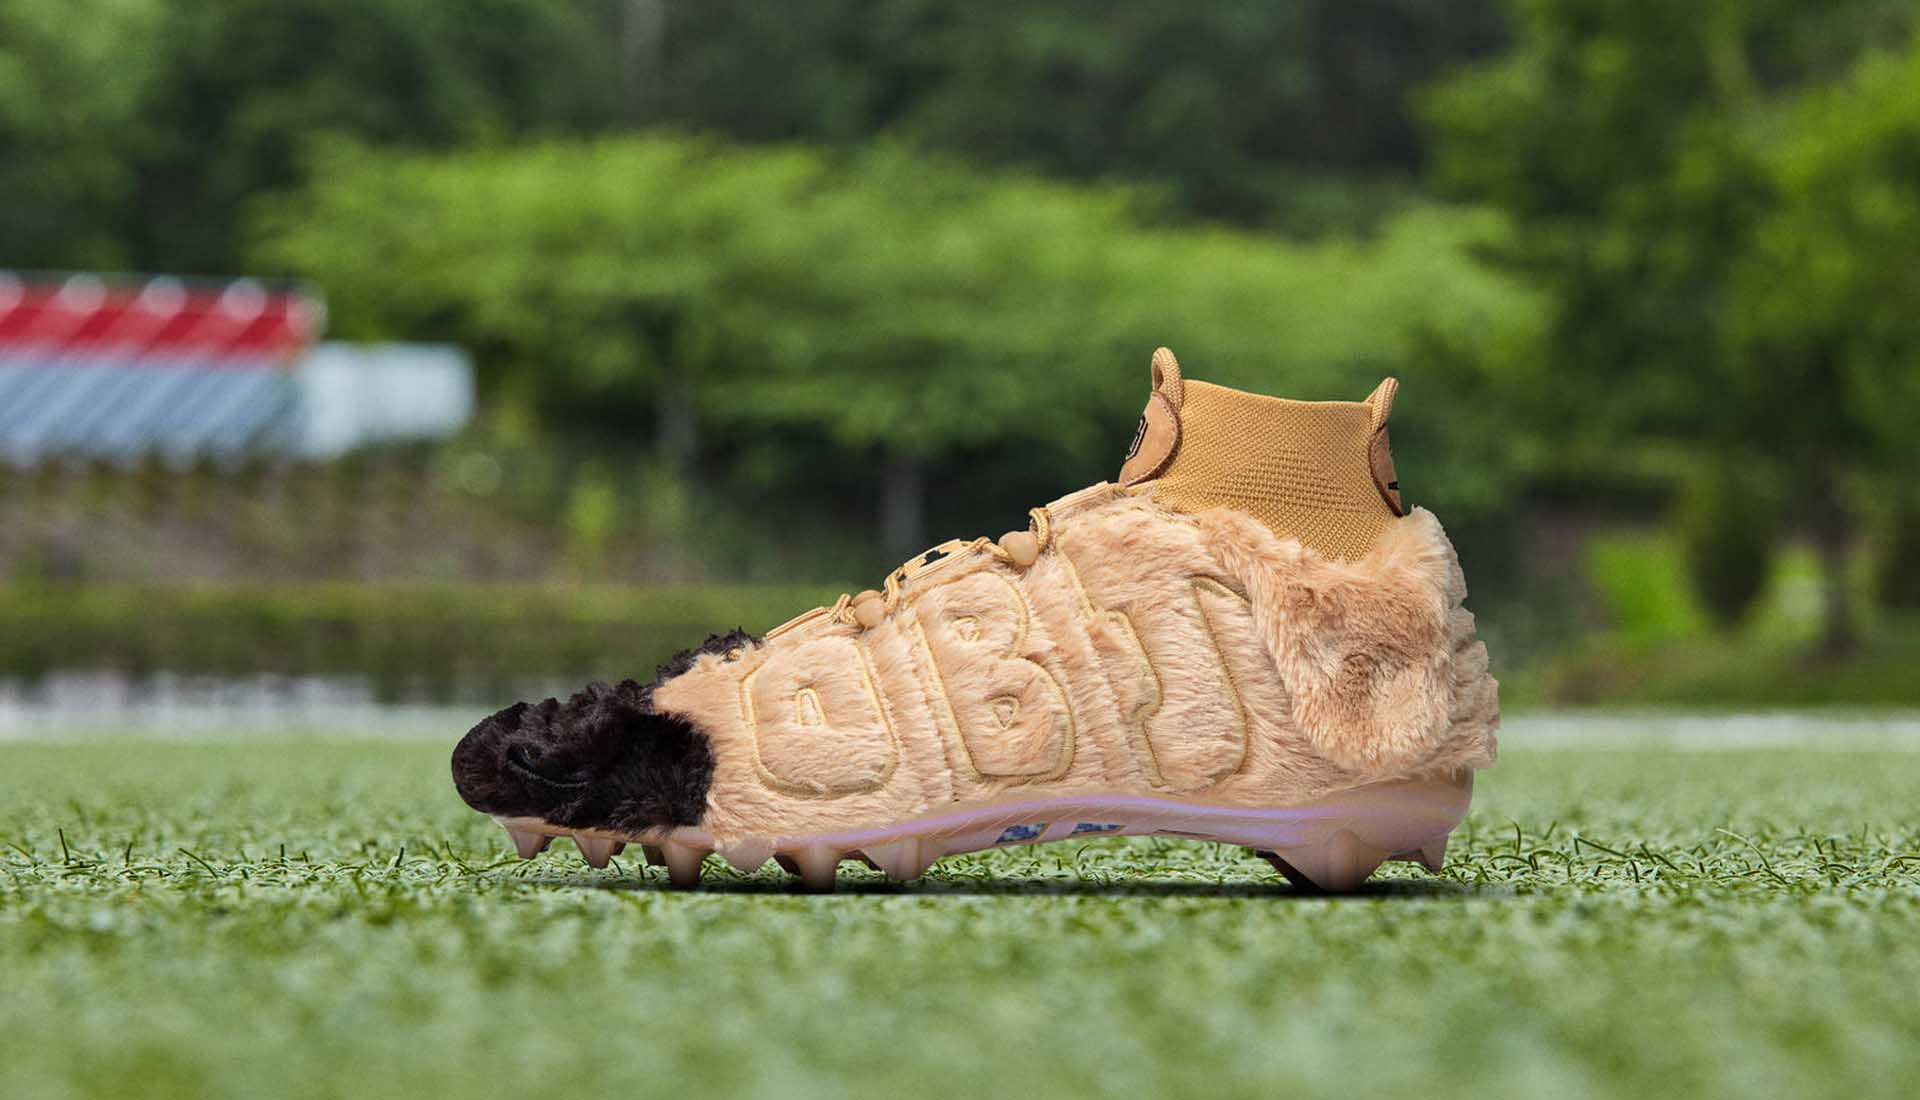 Why Odell Beckham's Nike Cleat Game Is